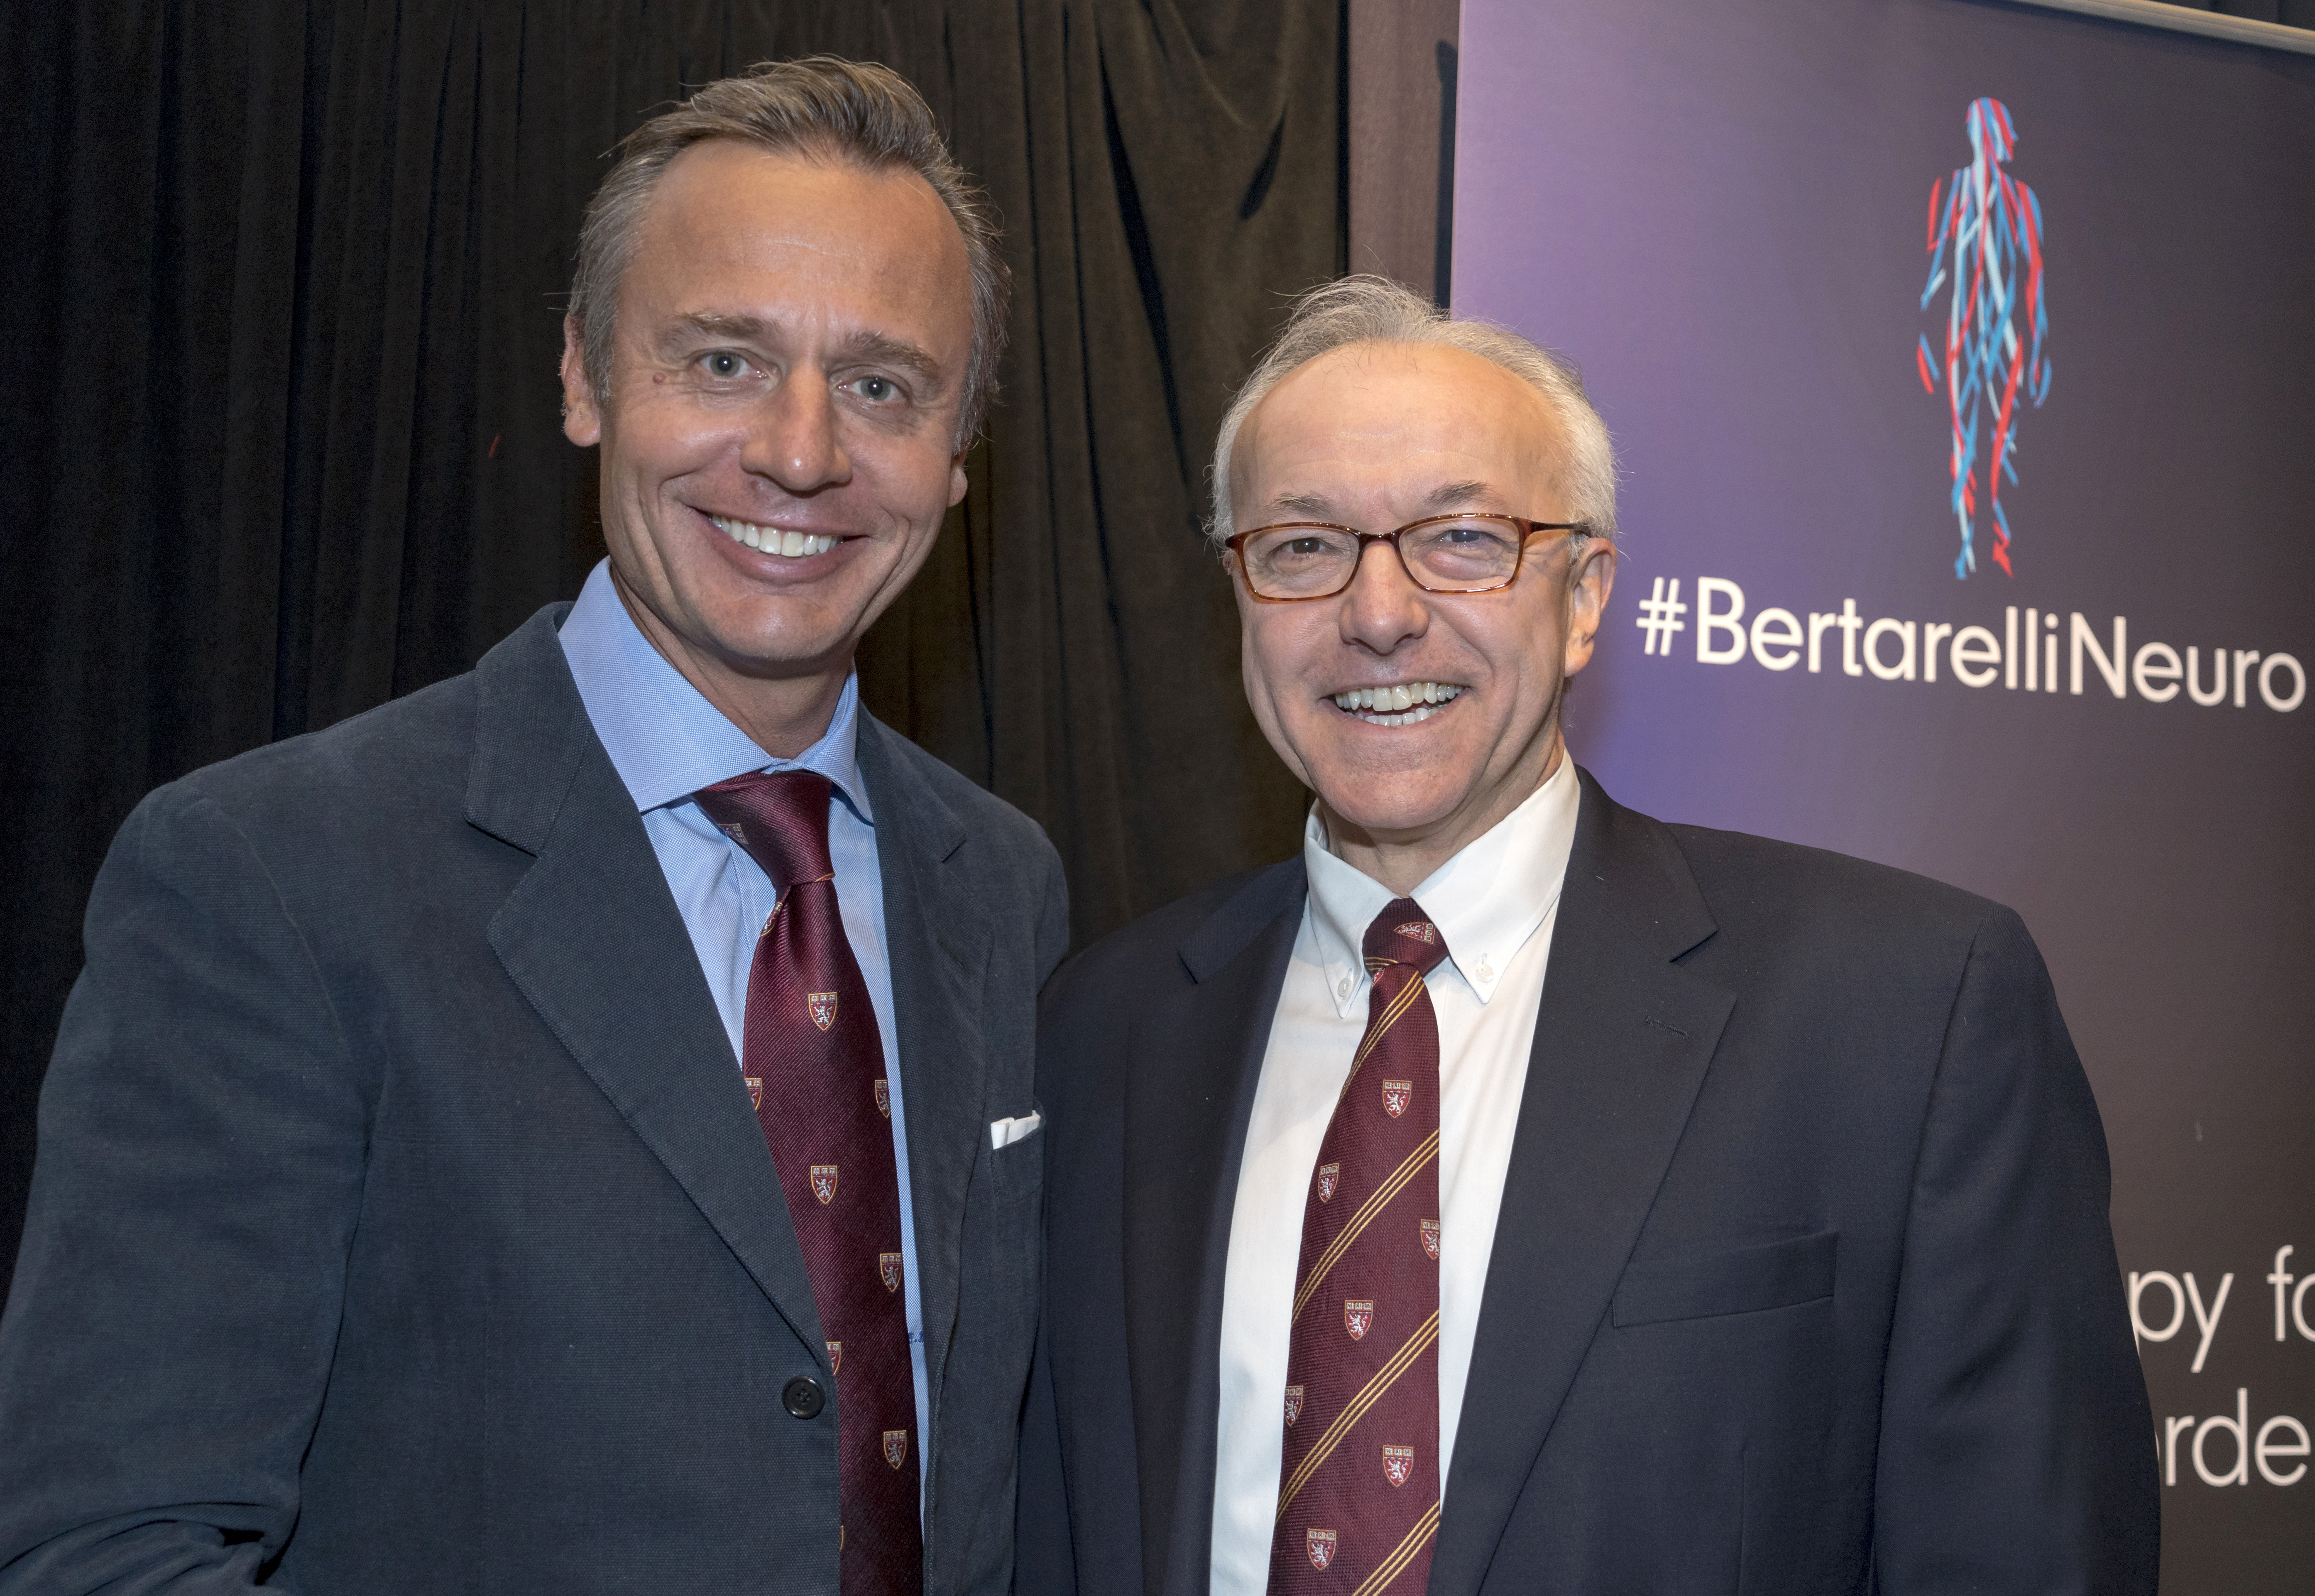 Ernesto Bertarelli, co-chair of the Bertarelli Foundation, and HMS Dean George Daley